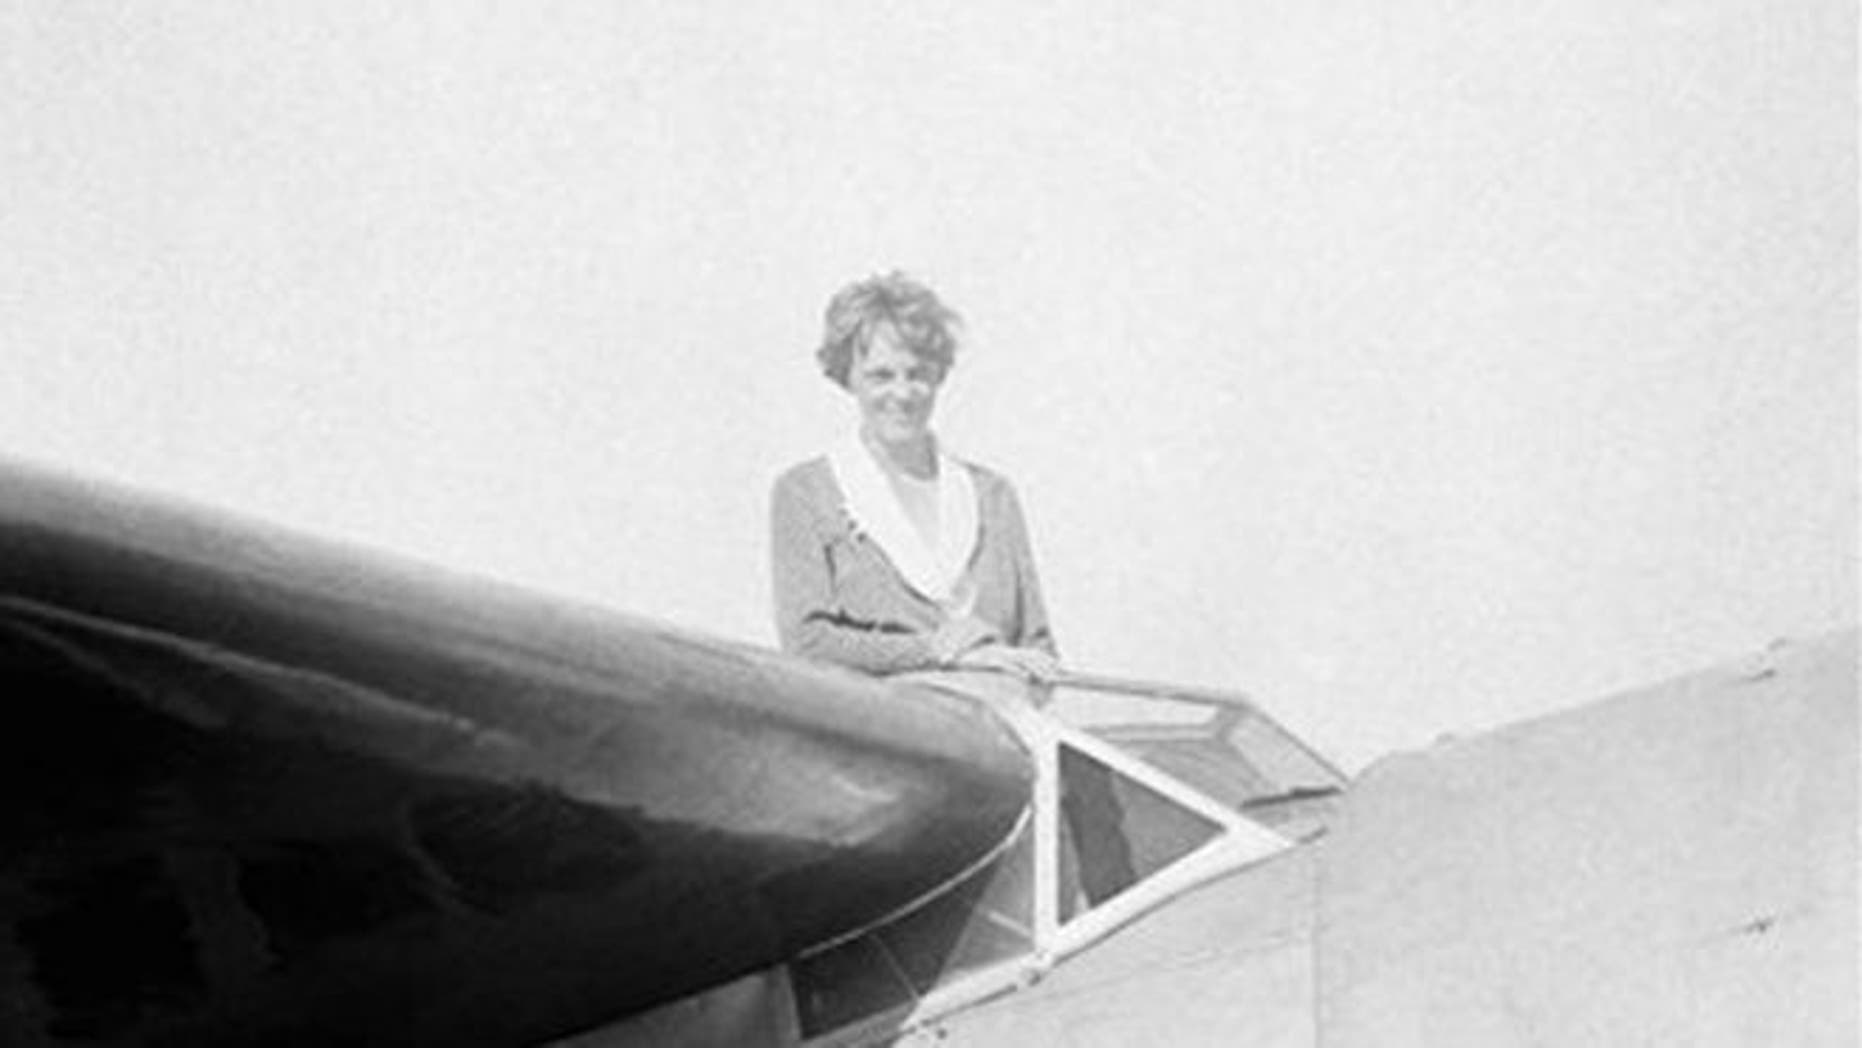 FILE: In this undated photo, Amelia Earhart, the first woman to cross the Atlantic Ocean by plane sits on top of a plane.